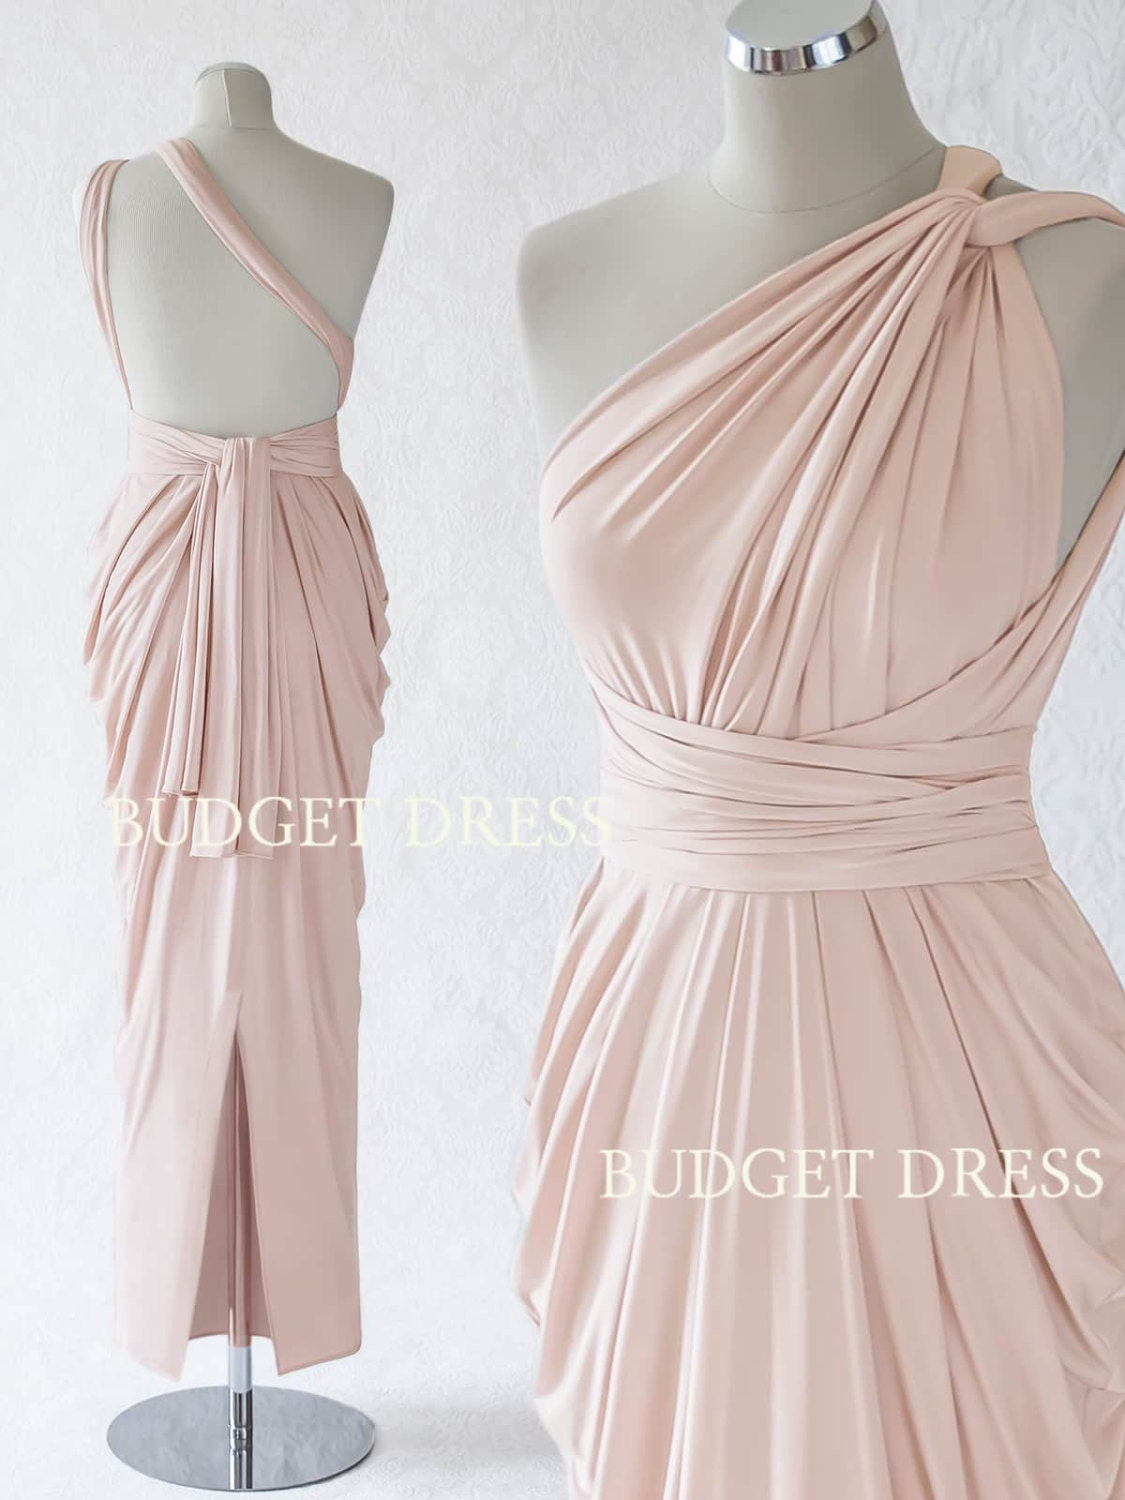 ff91cc44947 Nude Blush Multiform Bridesmaids Dress Infinity Greek Prom